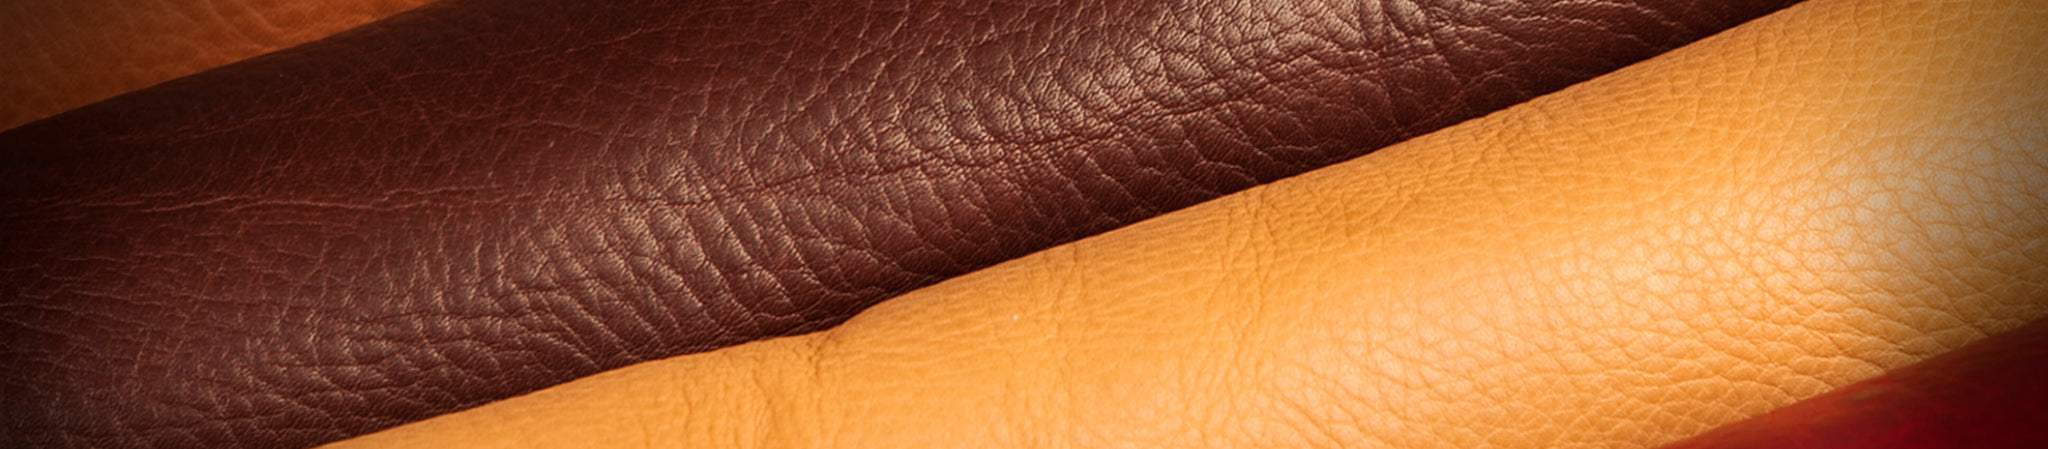 vaja bridge leather